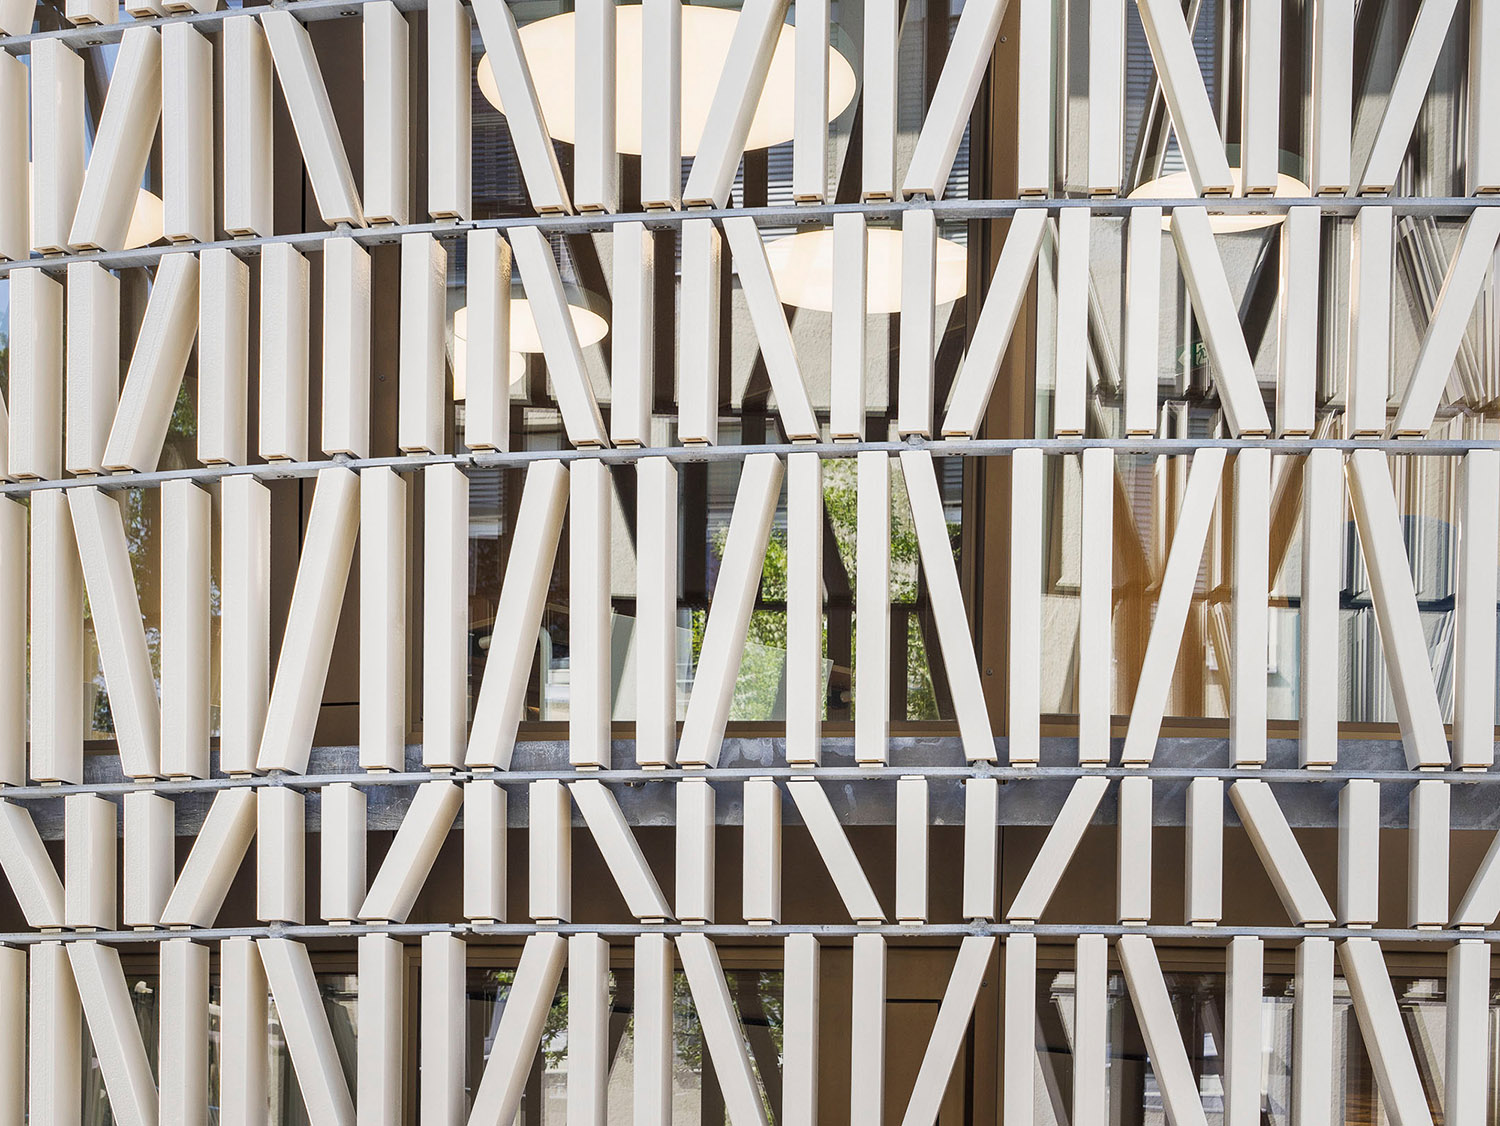 The ornaments are inspired by books arranged on shelves and brick patterns of old farm buildings. Albrecht I. Schnabel